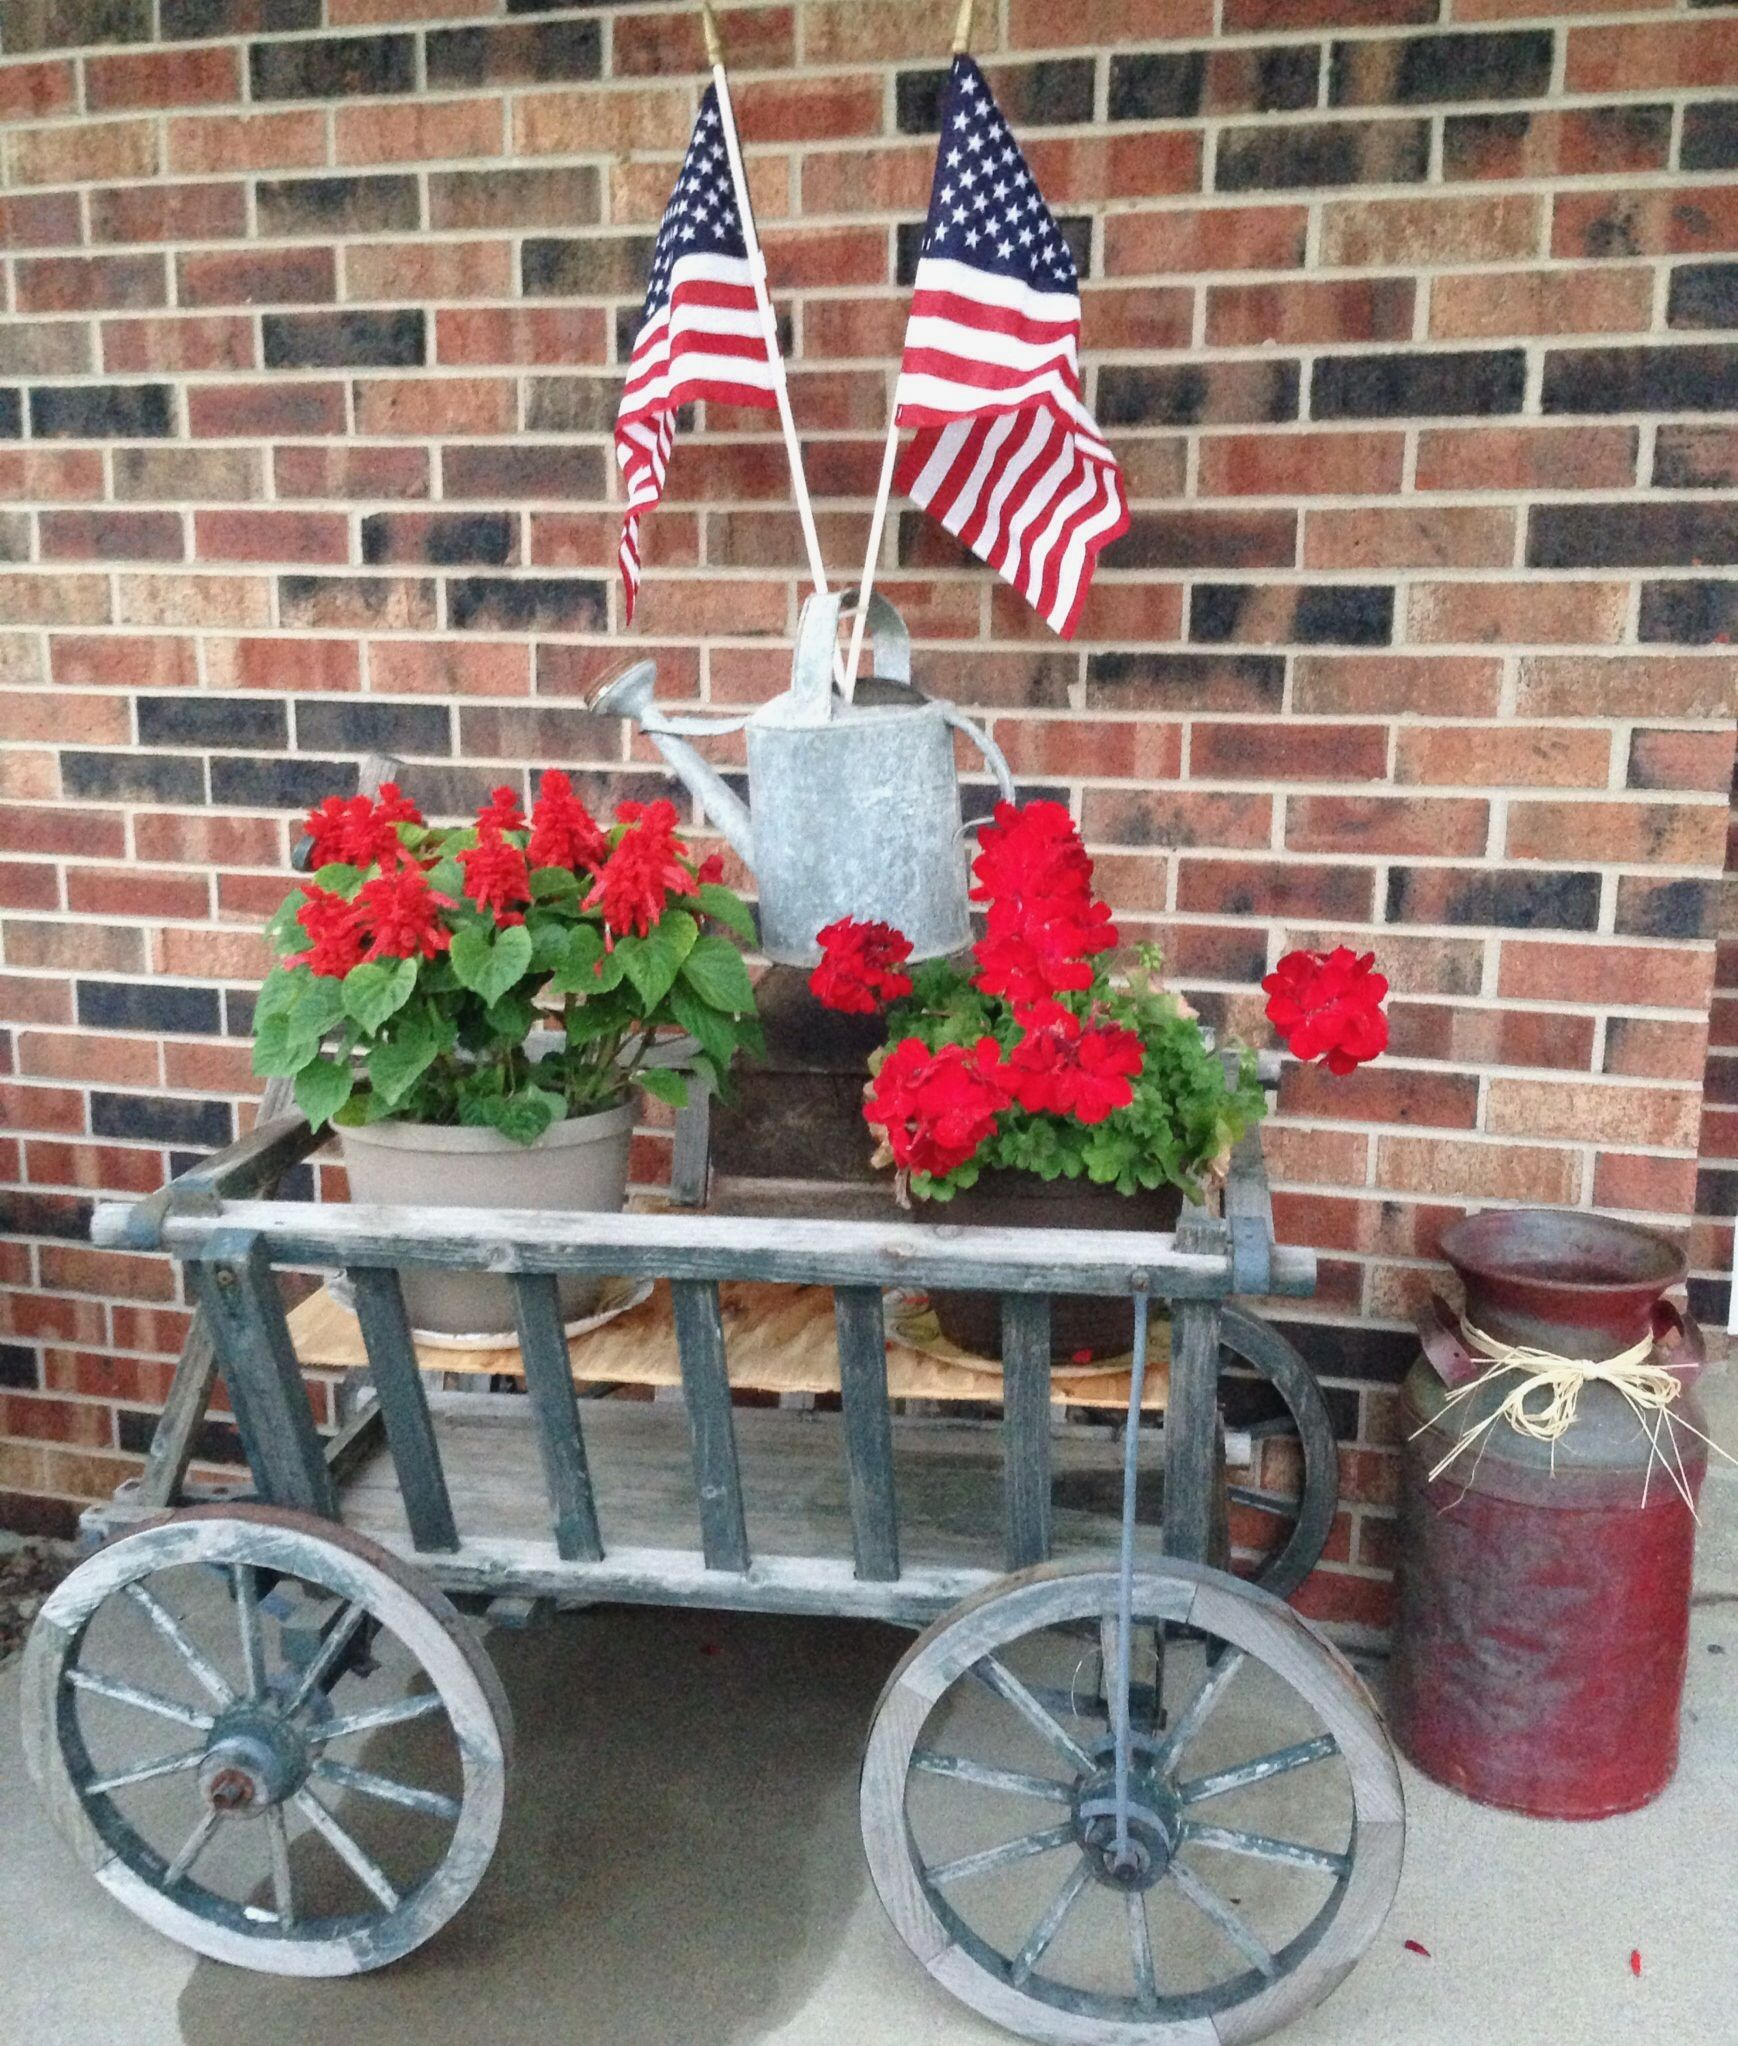 Pin by perkinjahdt on Backyard in 2020 Fourth of july decor